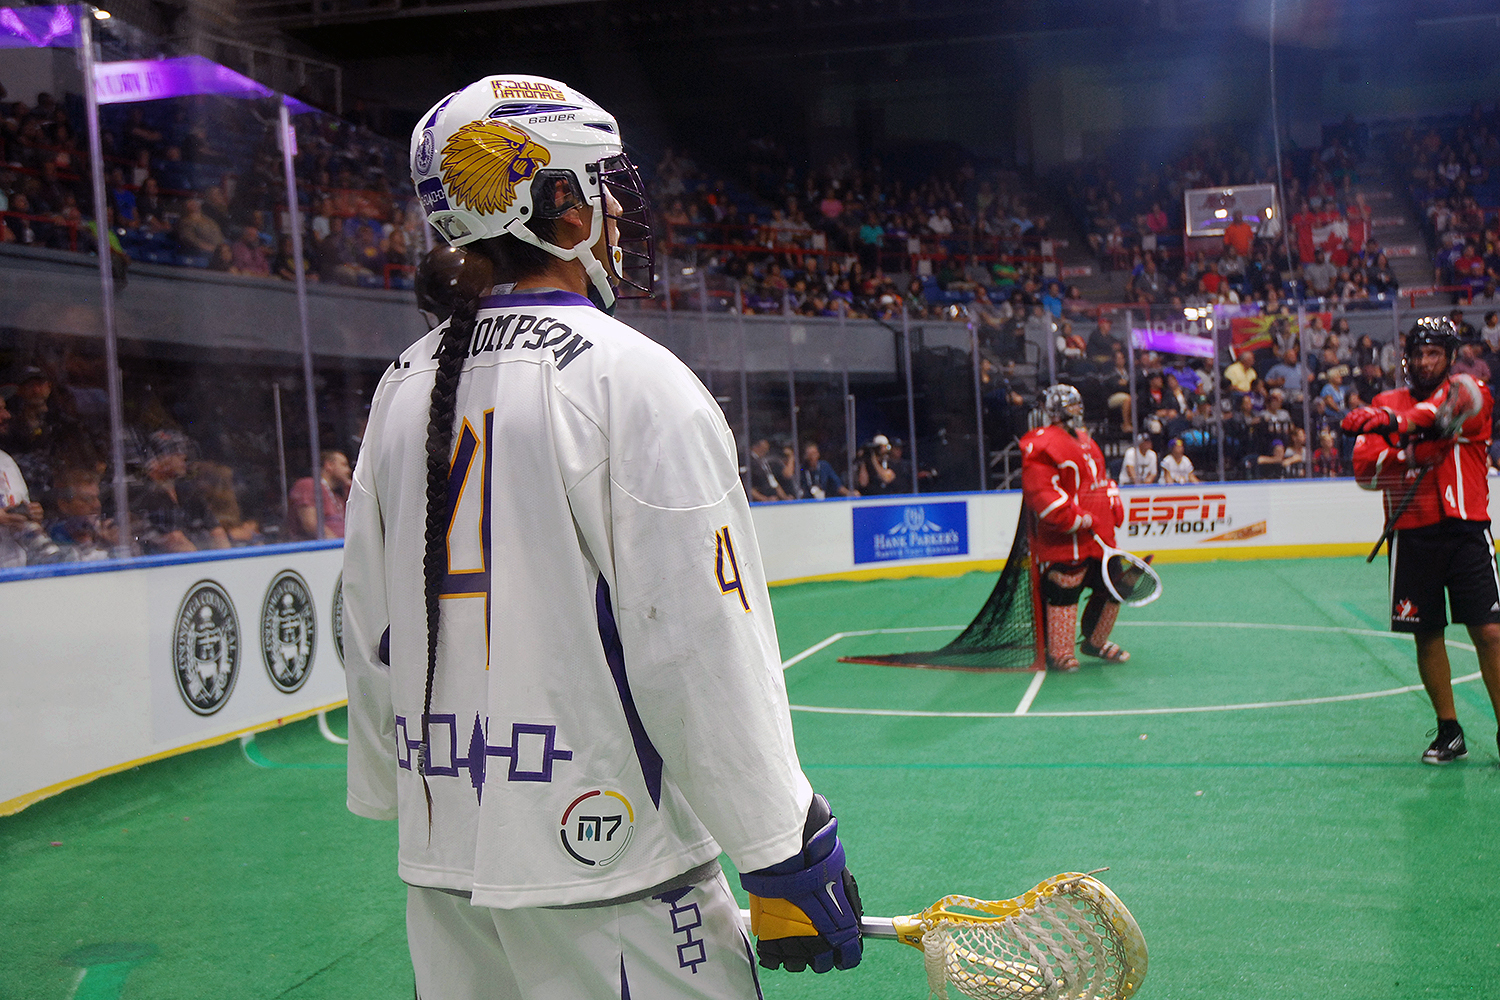 Lyle Thompson of the Iroquois Nationals